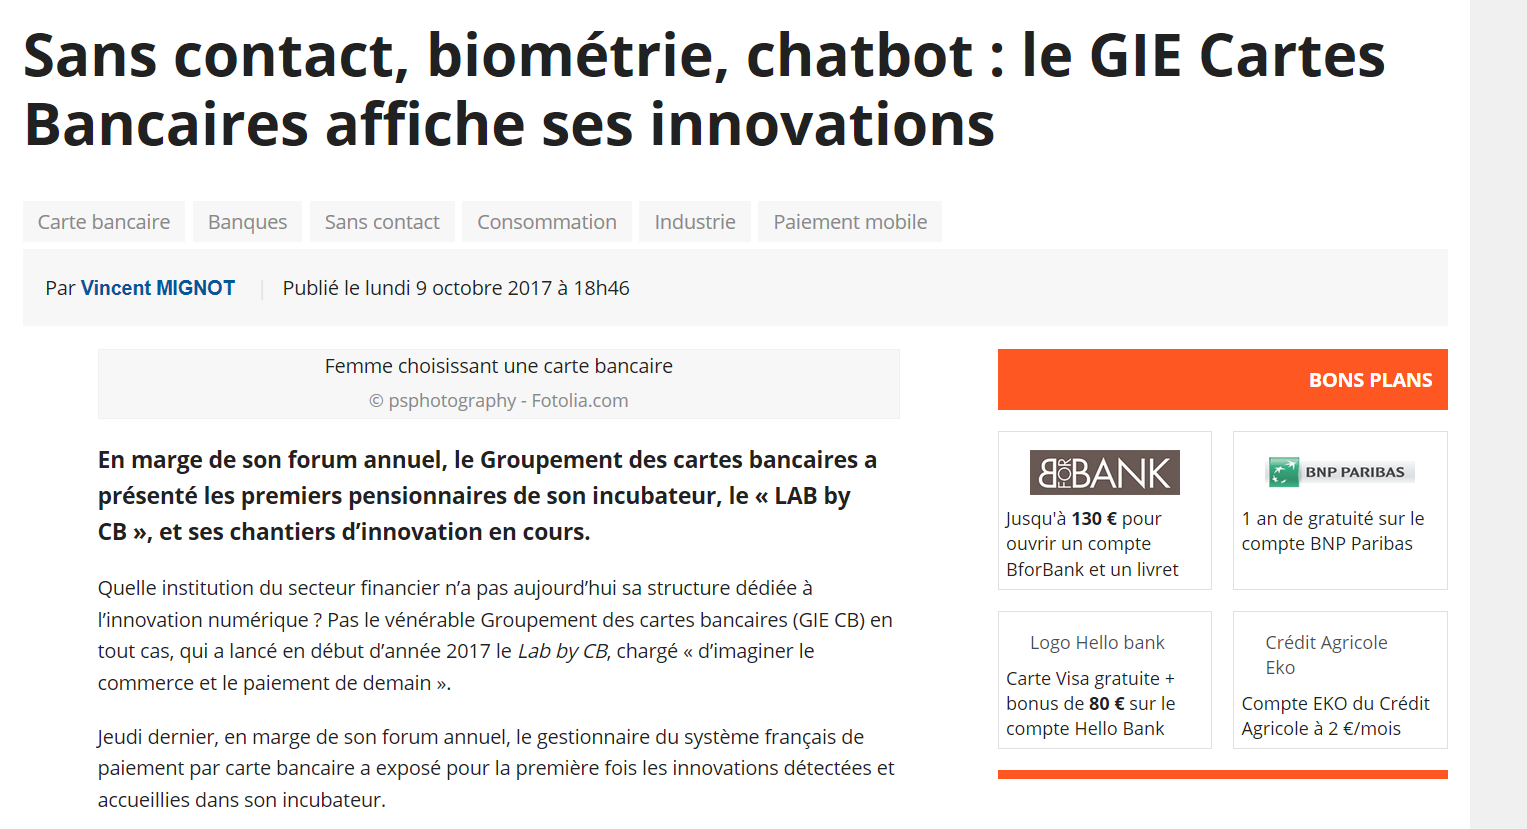 https://www.cbanque.com/actu/64685/sans-contact-biometrie-chatbot-le-gie-cartes-bancaires-affiche-ses-innovations